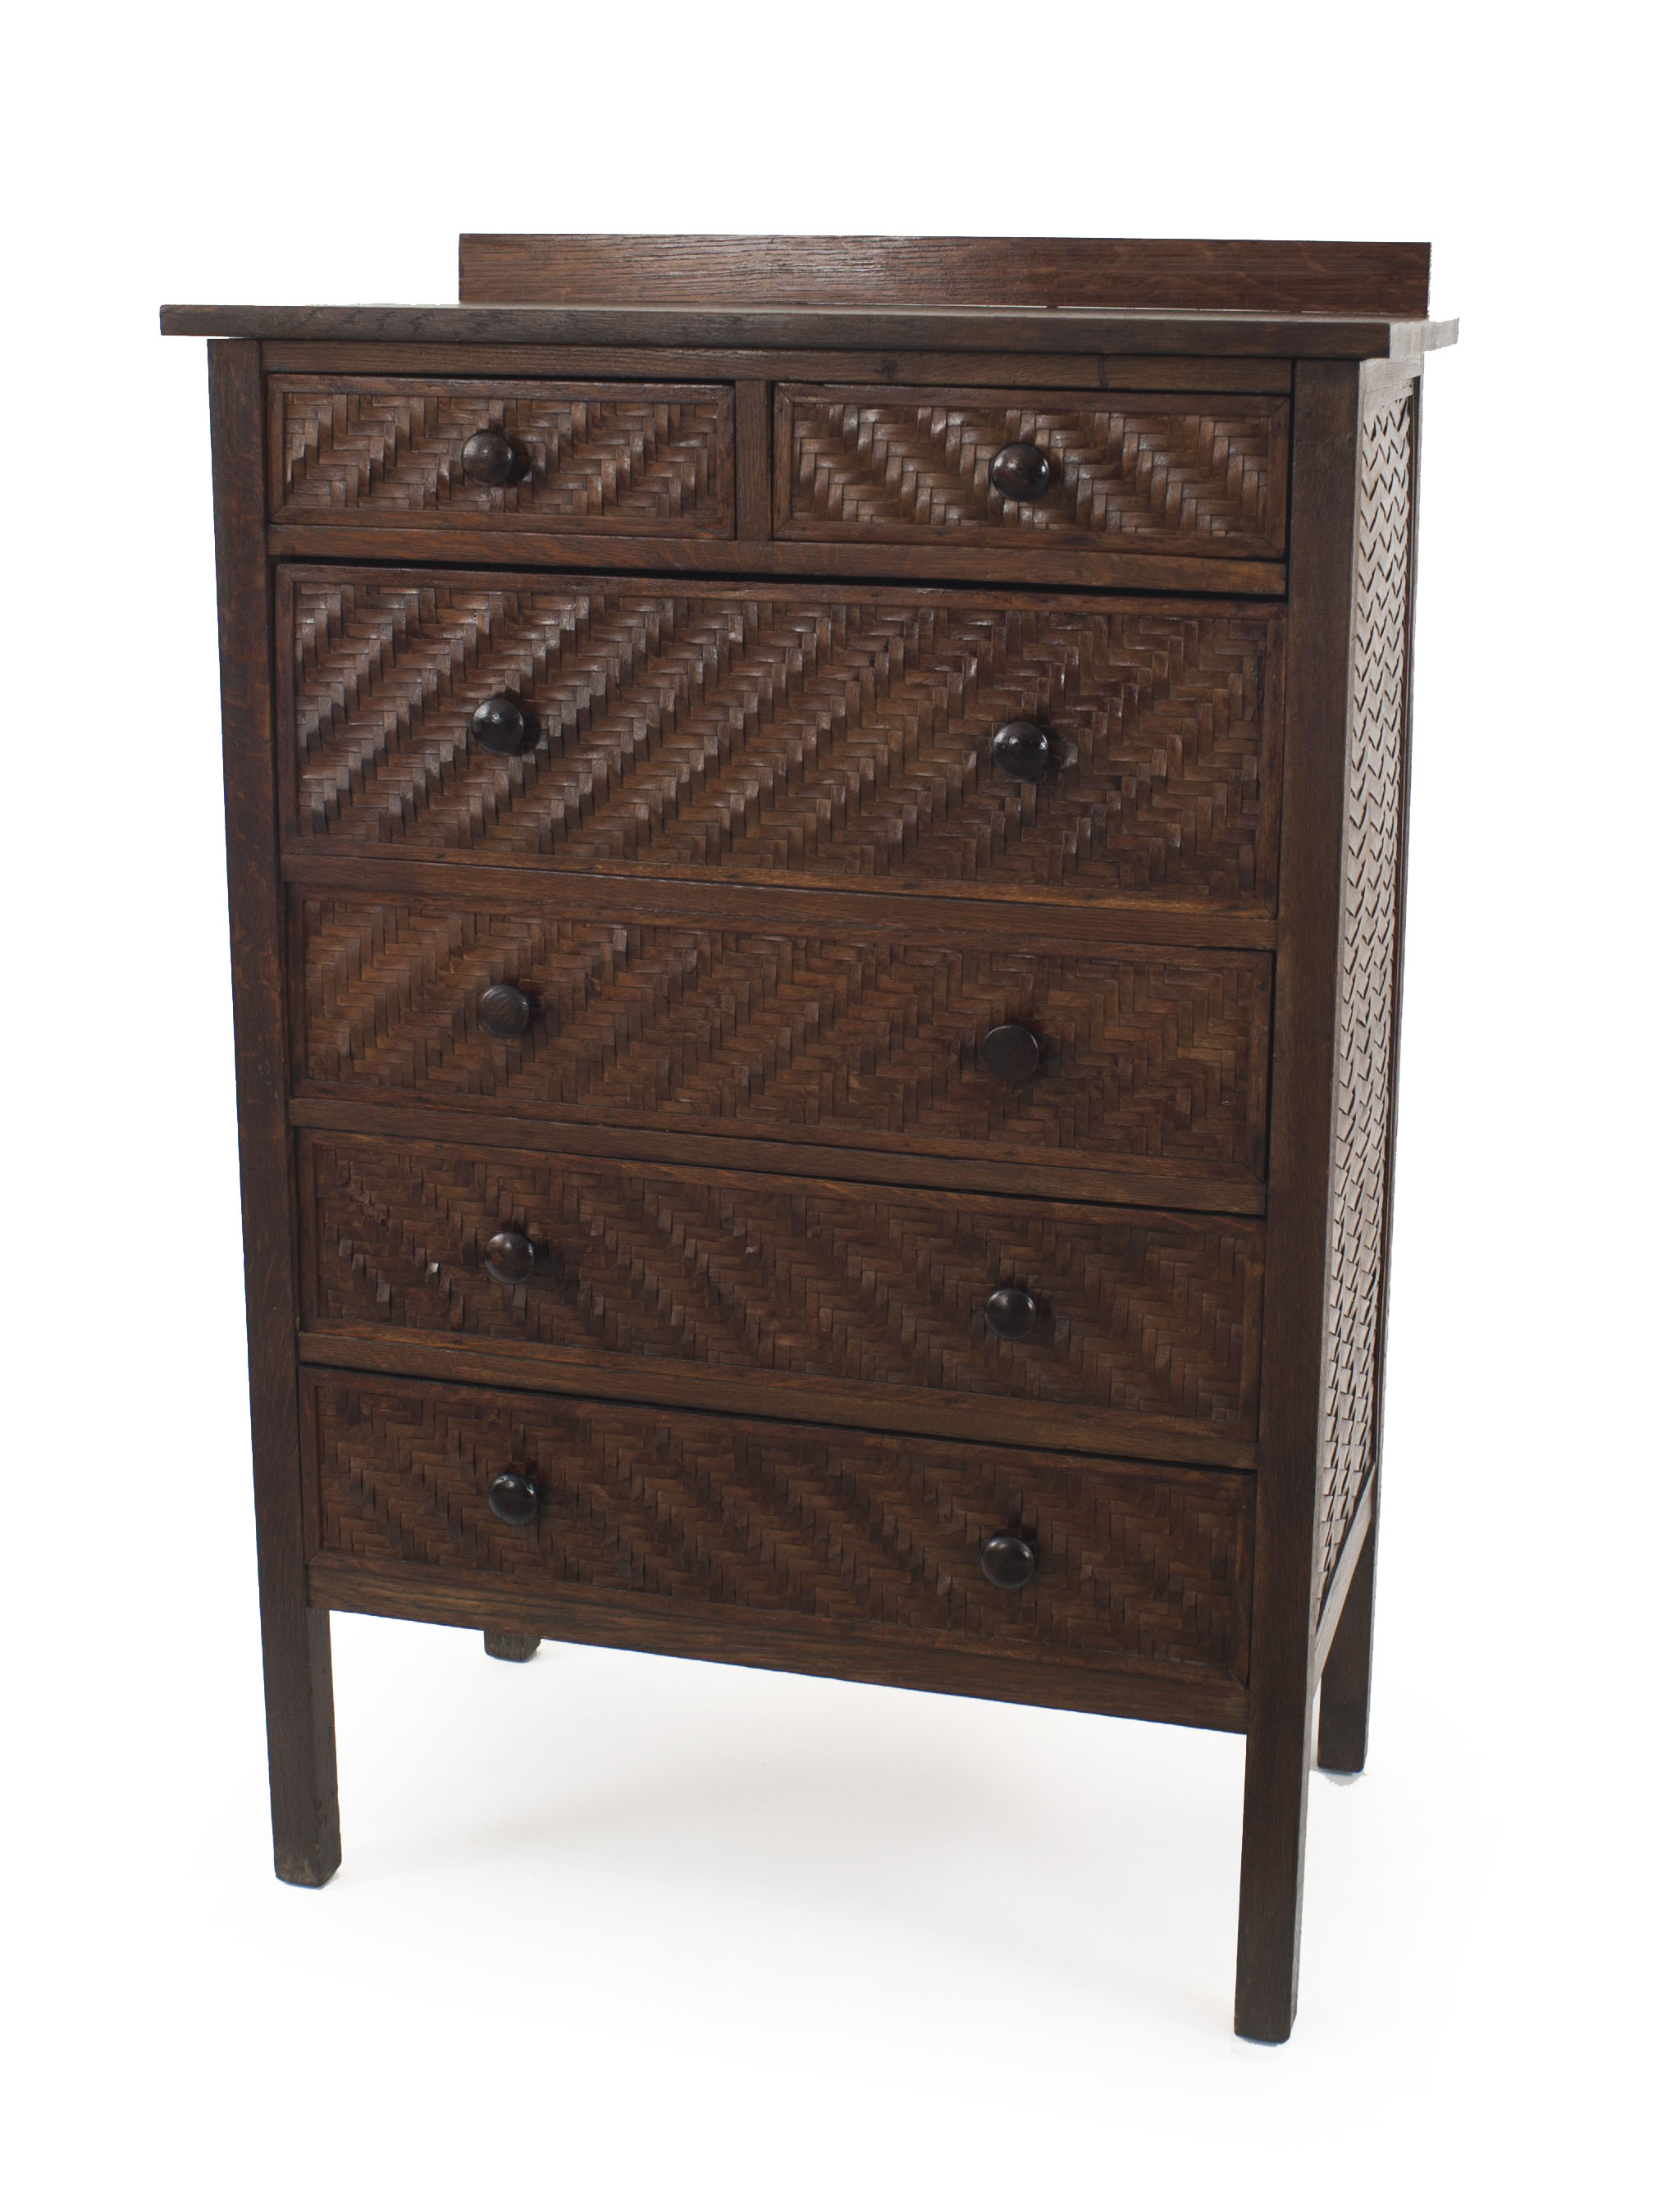 About Us American Rustic Mission Dark Stained Oak Chest With 2 Drawers Over 4 Large Drawers Having Splint Wood Woven Sides Trim Indian Splint Mfg